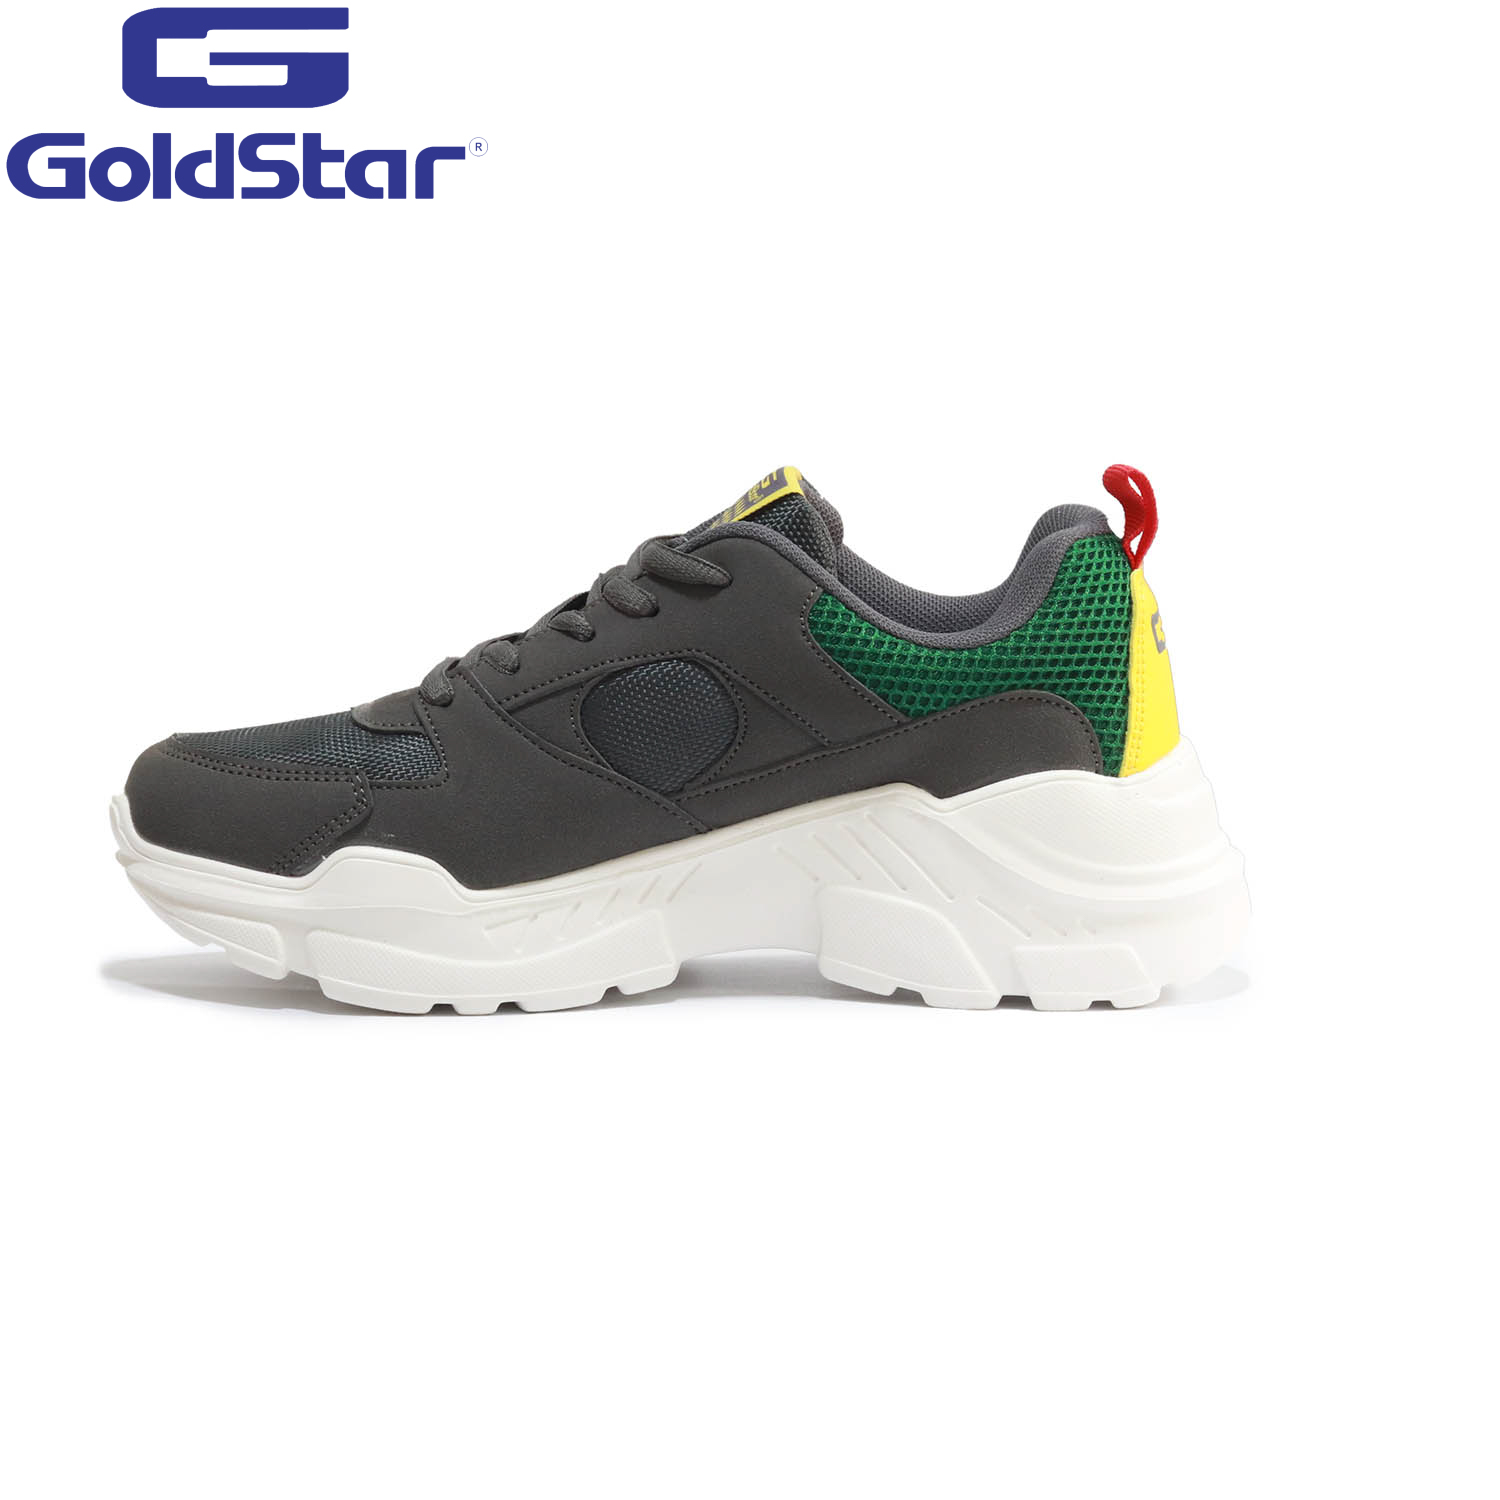 Goldstar Dark Gray / Green Sports Shoes For Men - 9137